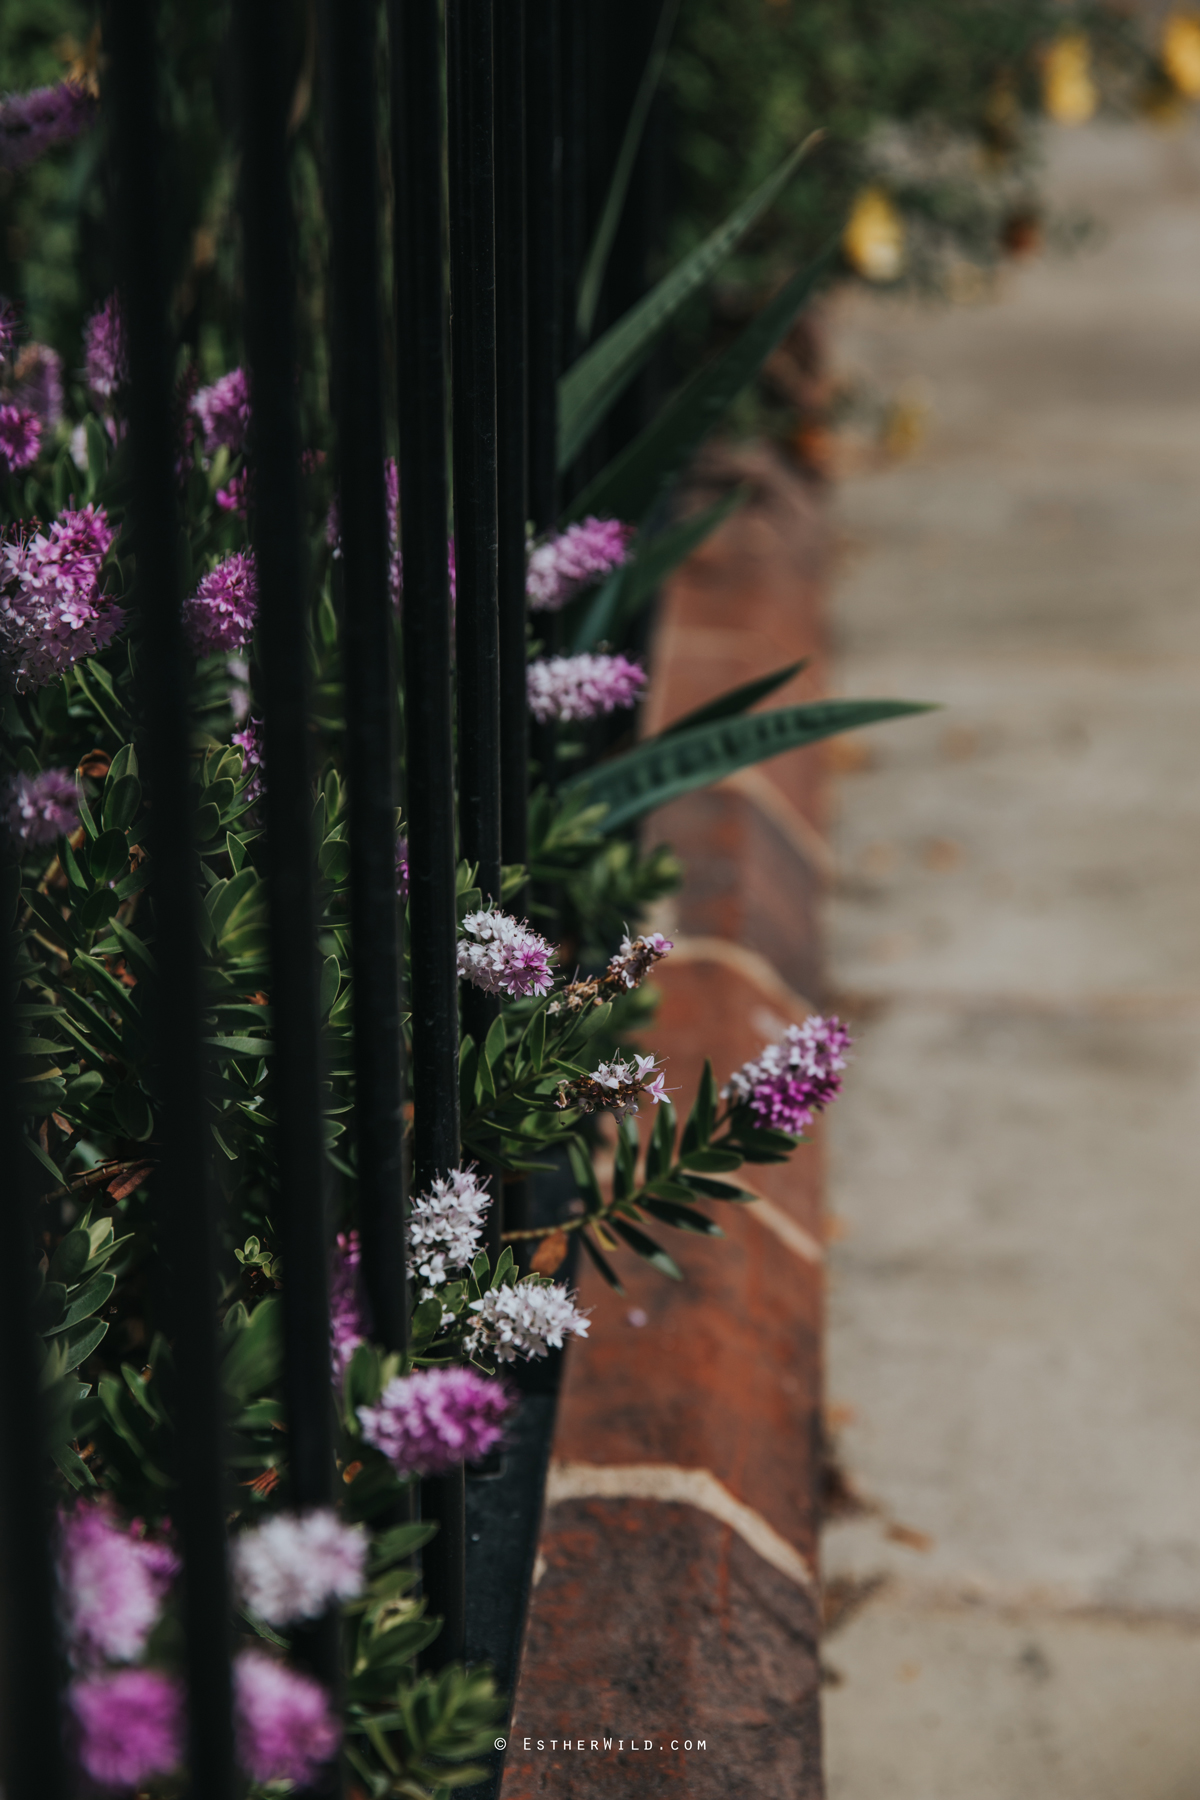 Assembly_House_Norwich_Norfolk_Esther_Wild_Photographer_IMG_0105.jpg